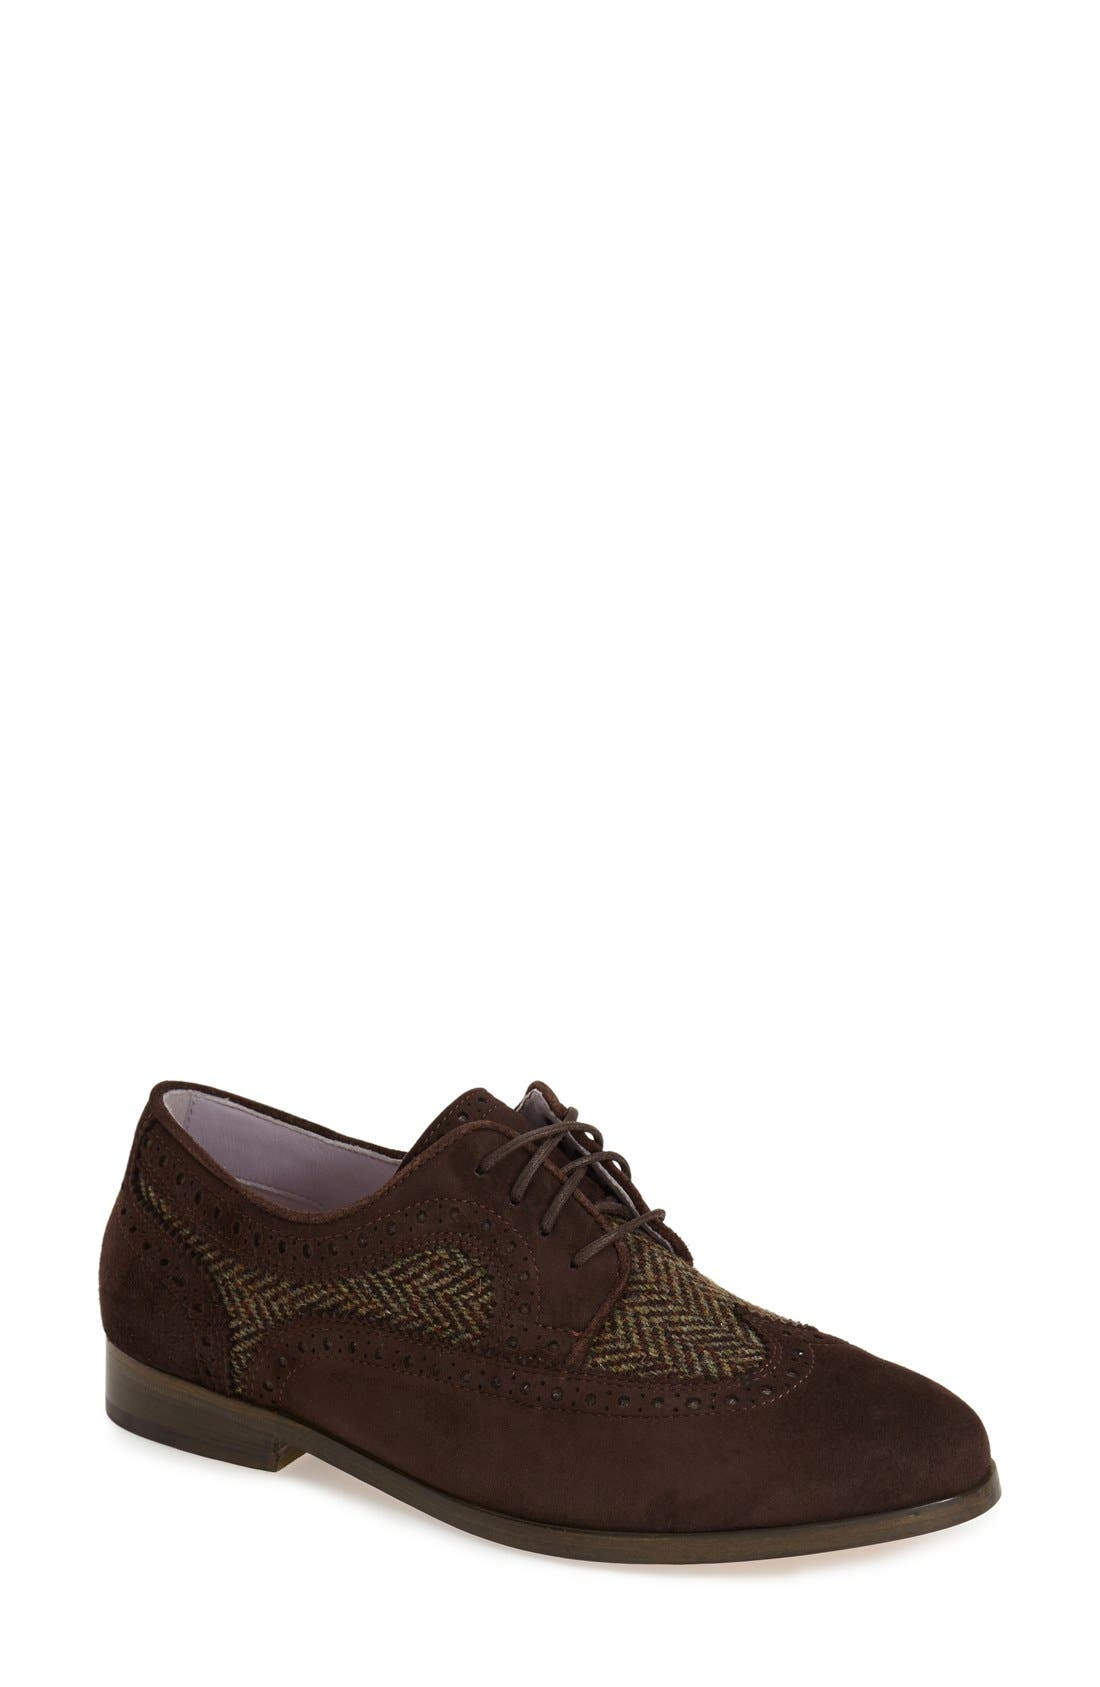 Alternate Image 1 Selected - Johnston & Murphy 'Dinah' Lace-Up Wingtip Oxford (Women)